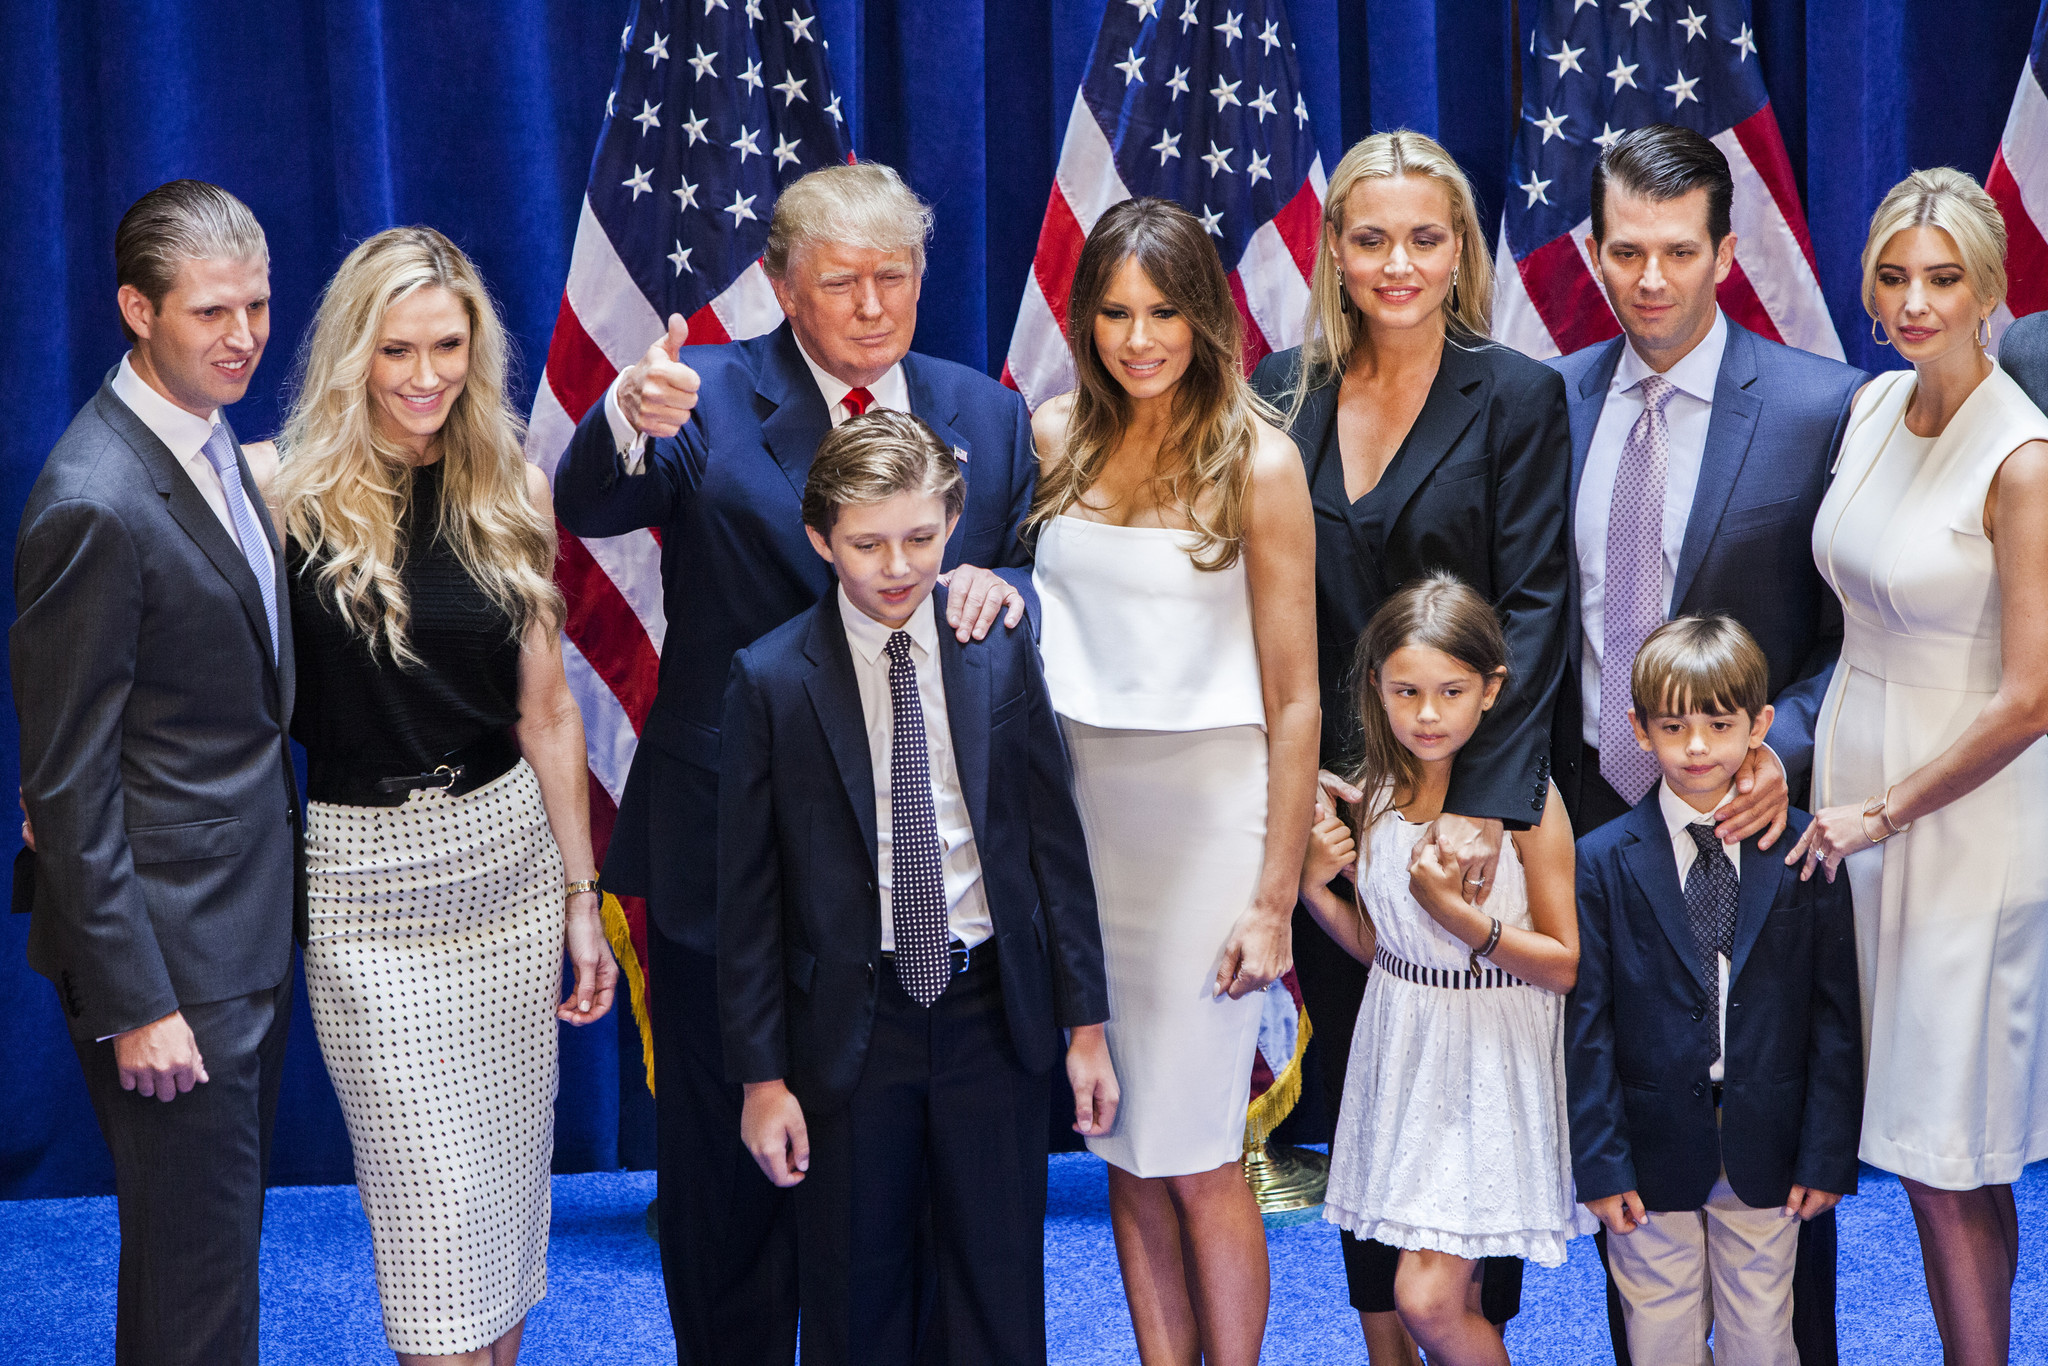 Donald Trump poses with family after candidacy ...